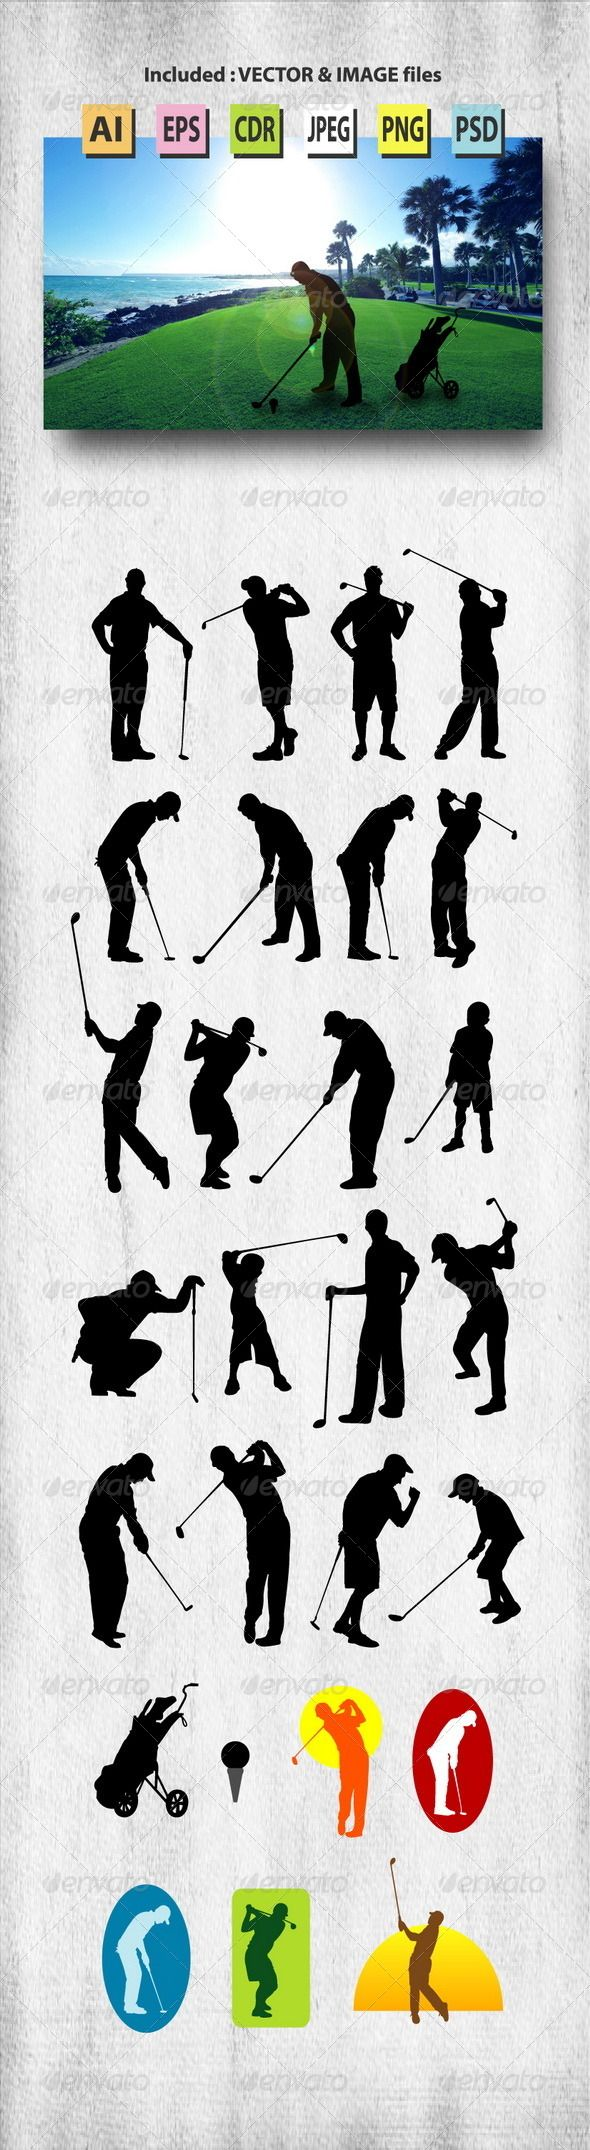 Male Golfer Silhouettes Graphicriver Bubba Keg Pinterest Golf